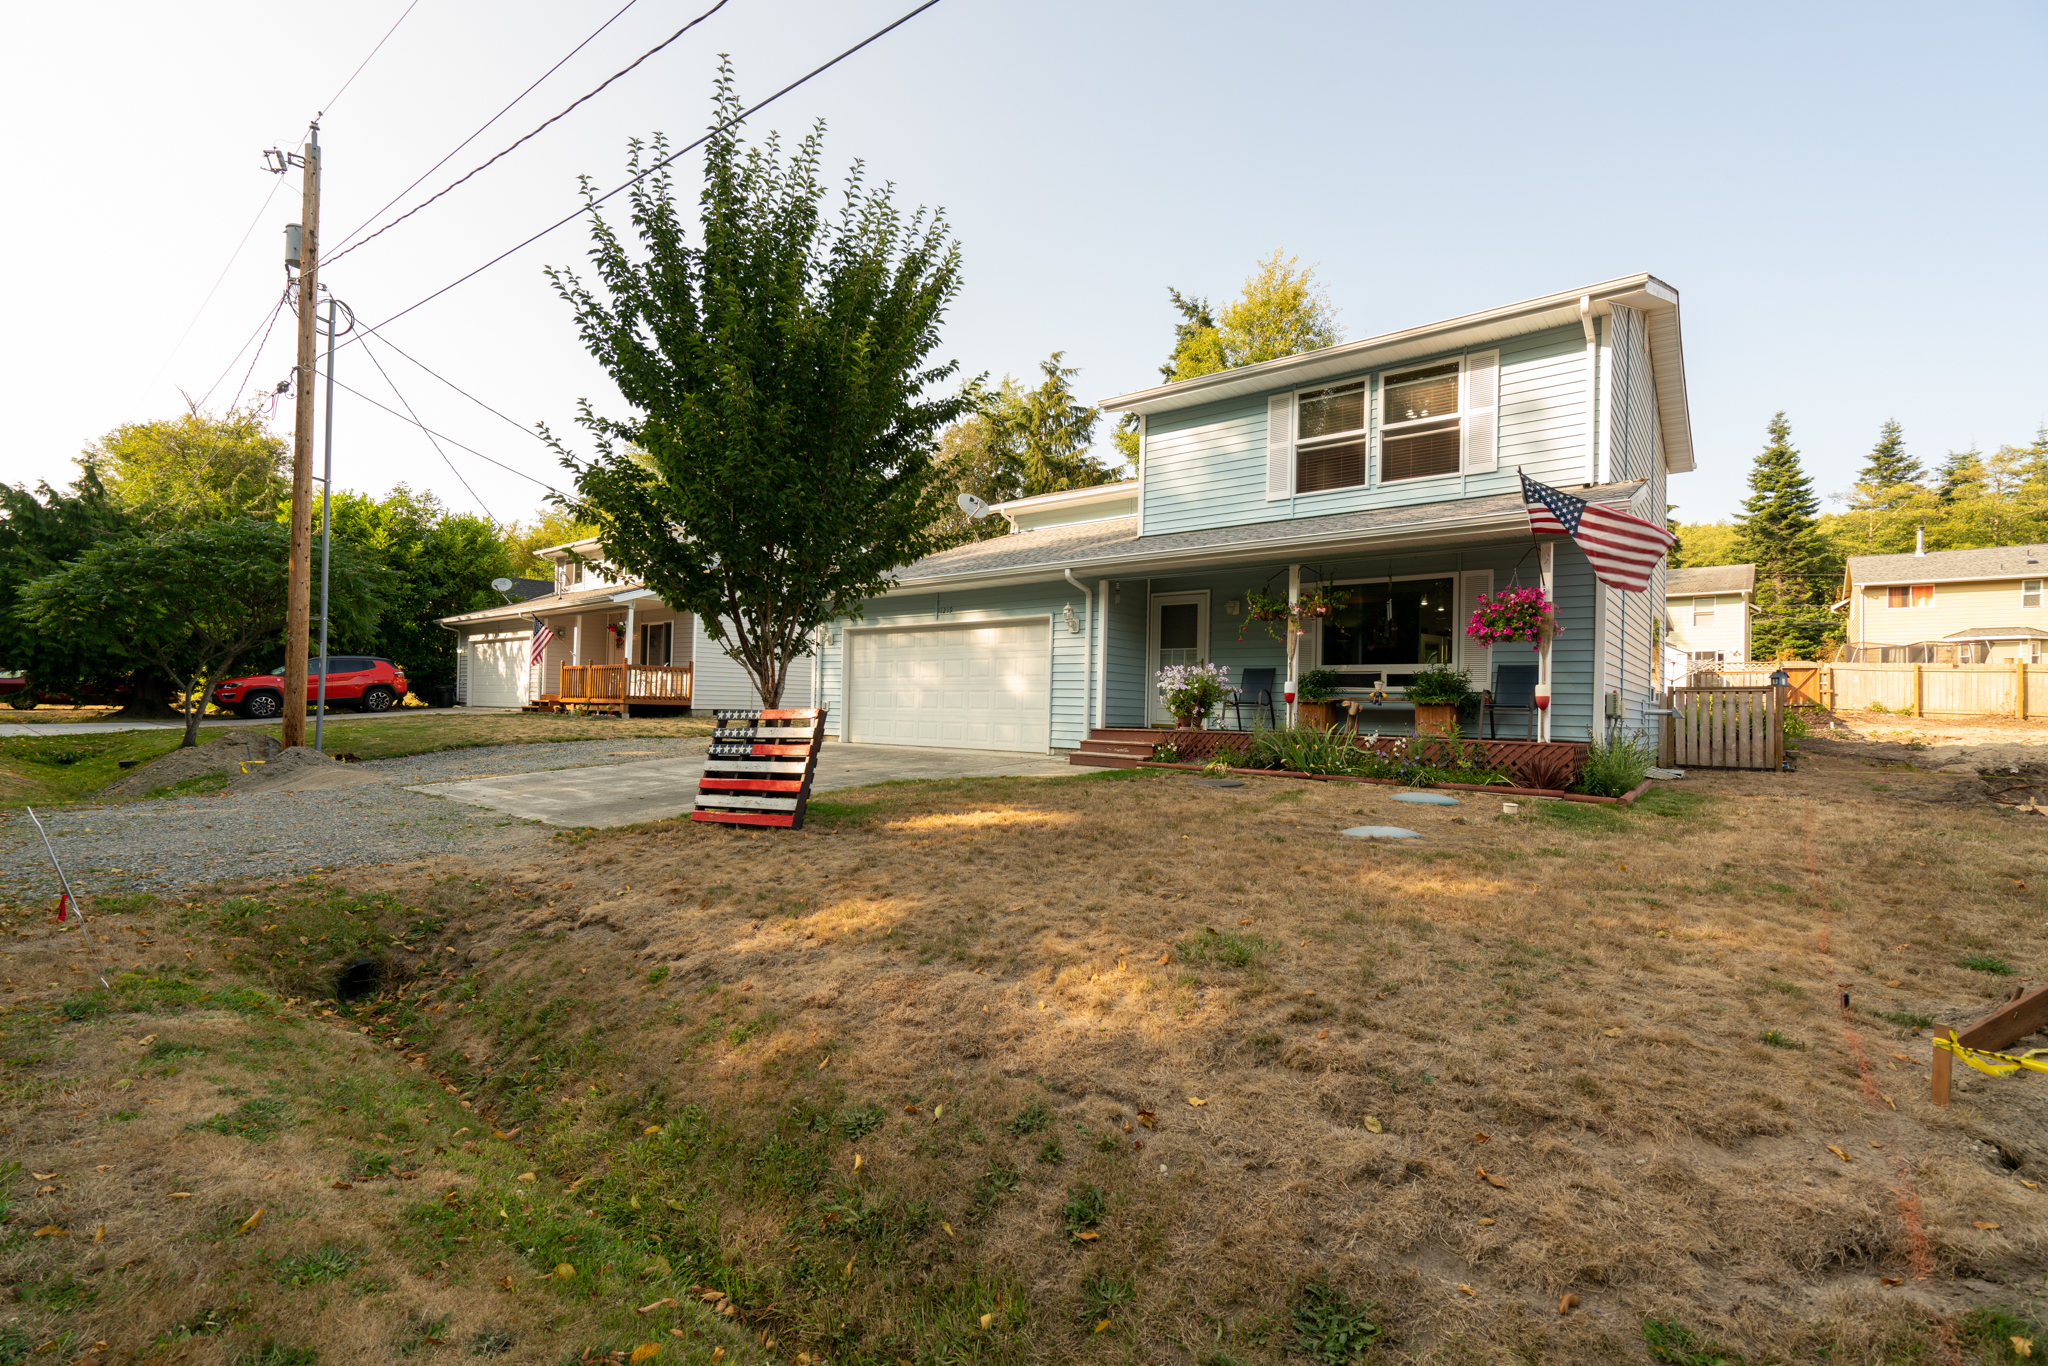 1219 S Leahy Dr - Coupeville, WA 98239